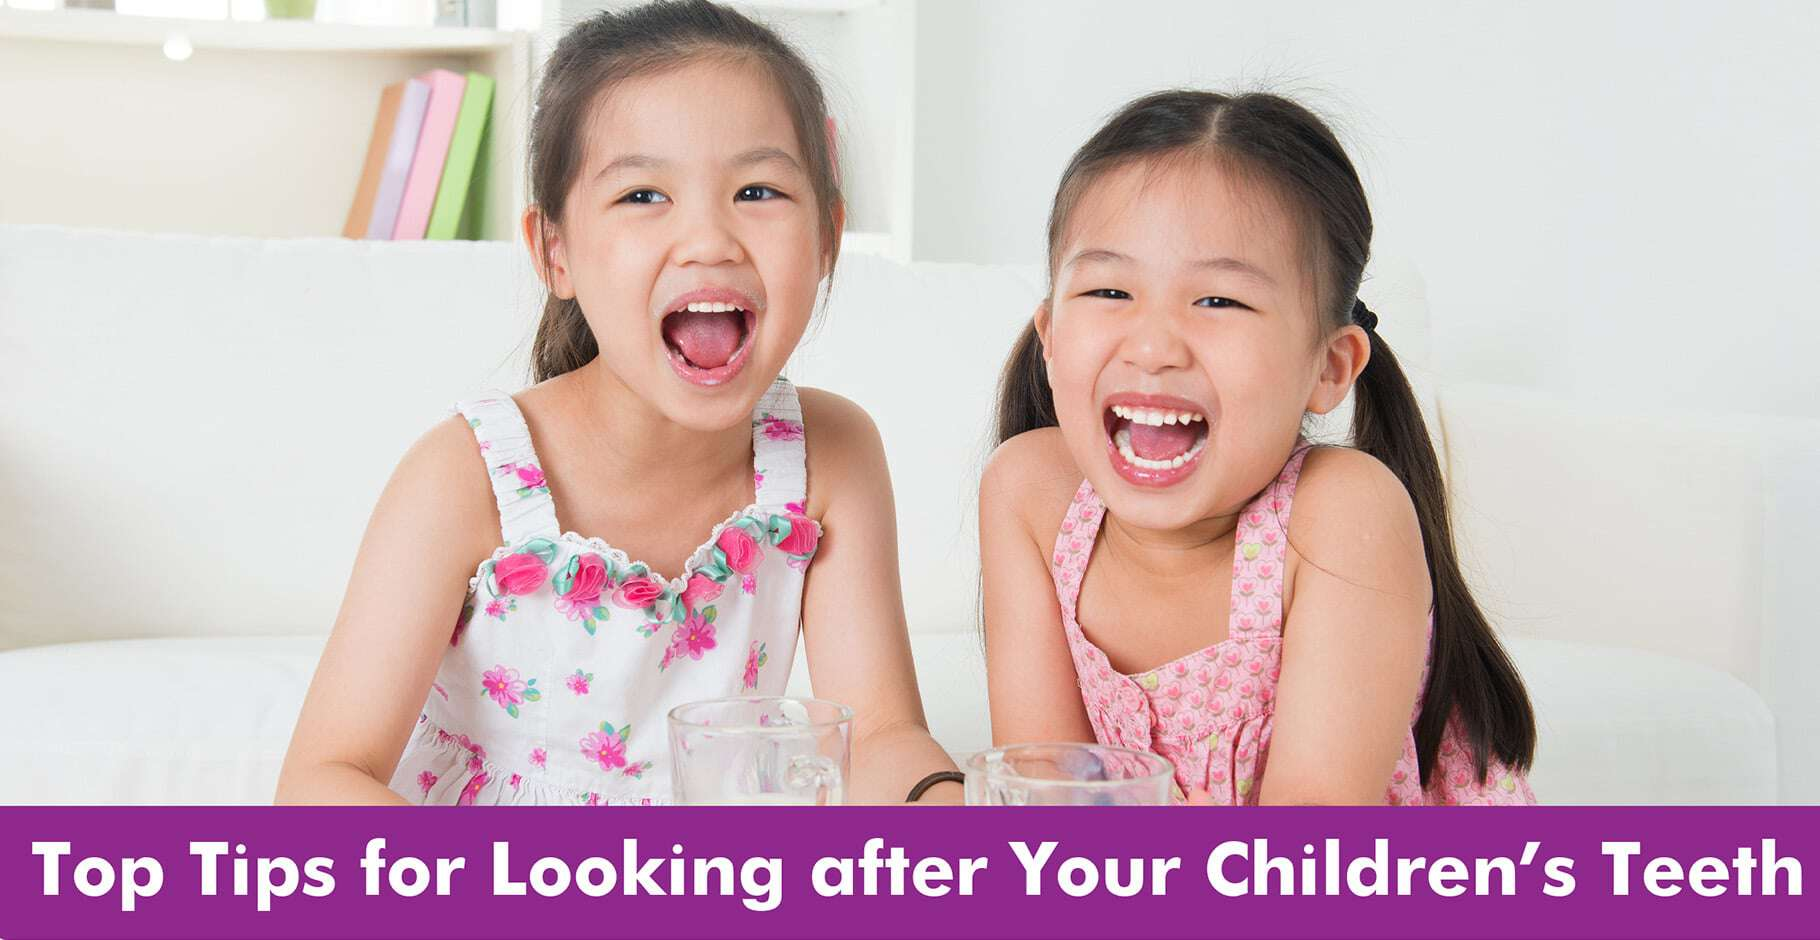 Dental Talk @ Jurong West Public Library: Top Tips for Looking after Your Children's Teeth